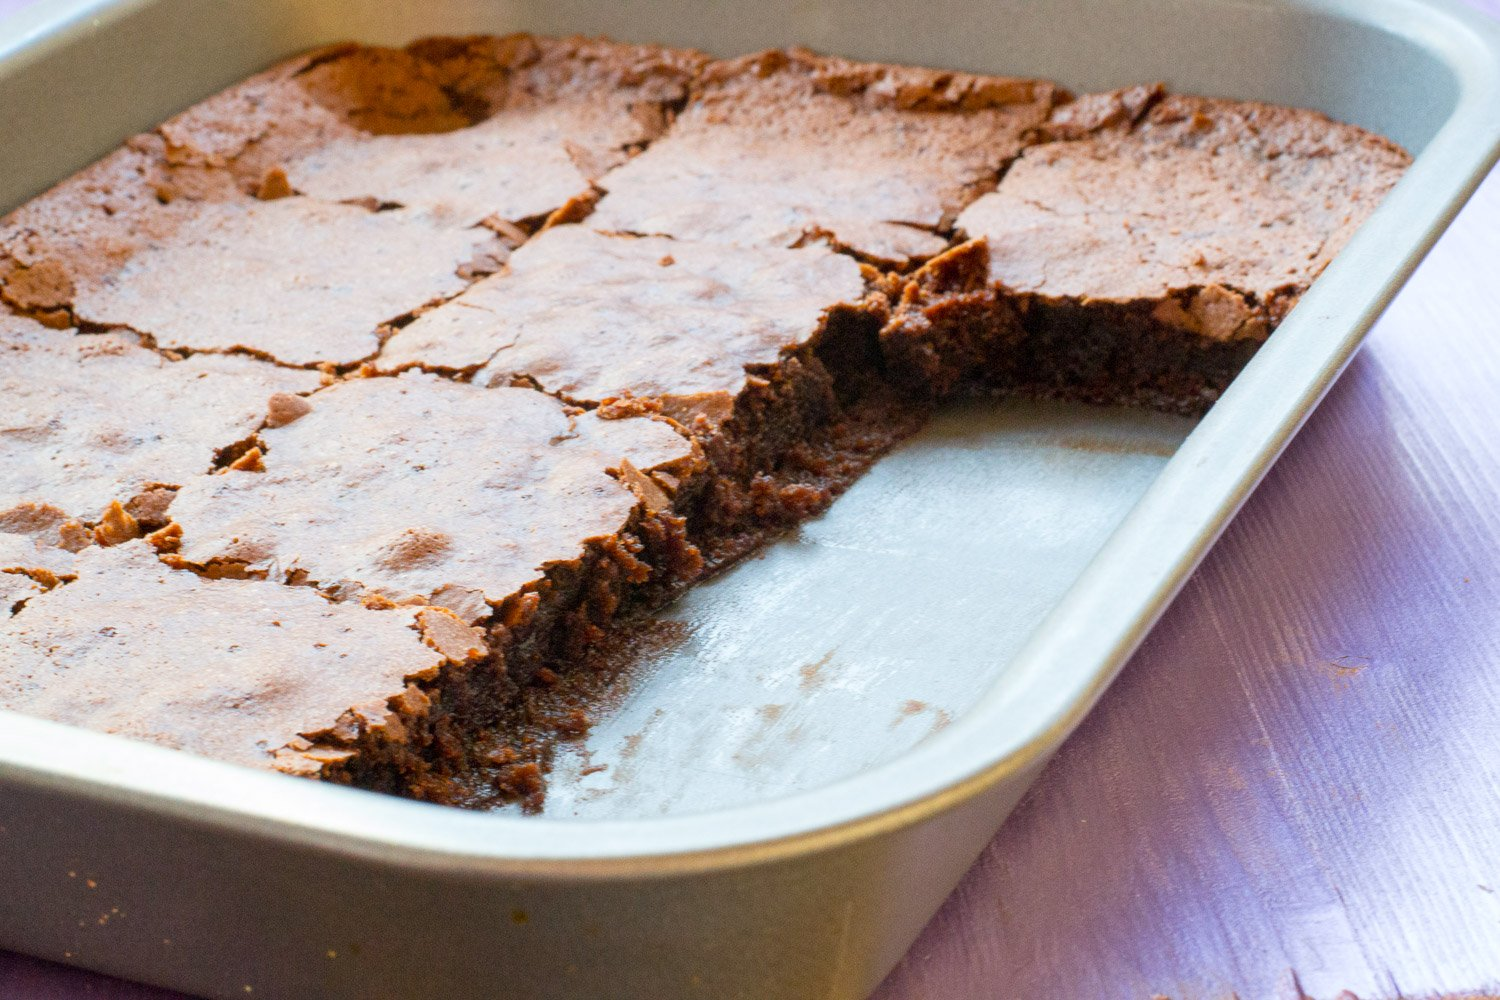 Vegan Betty Crocker brownies